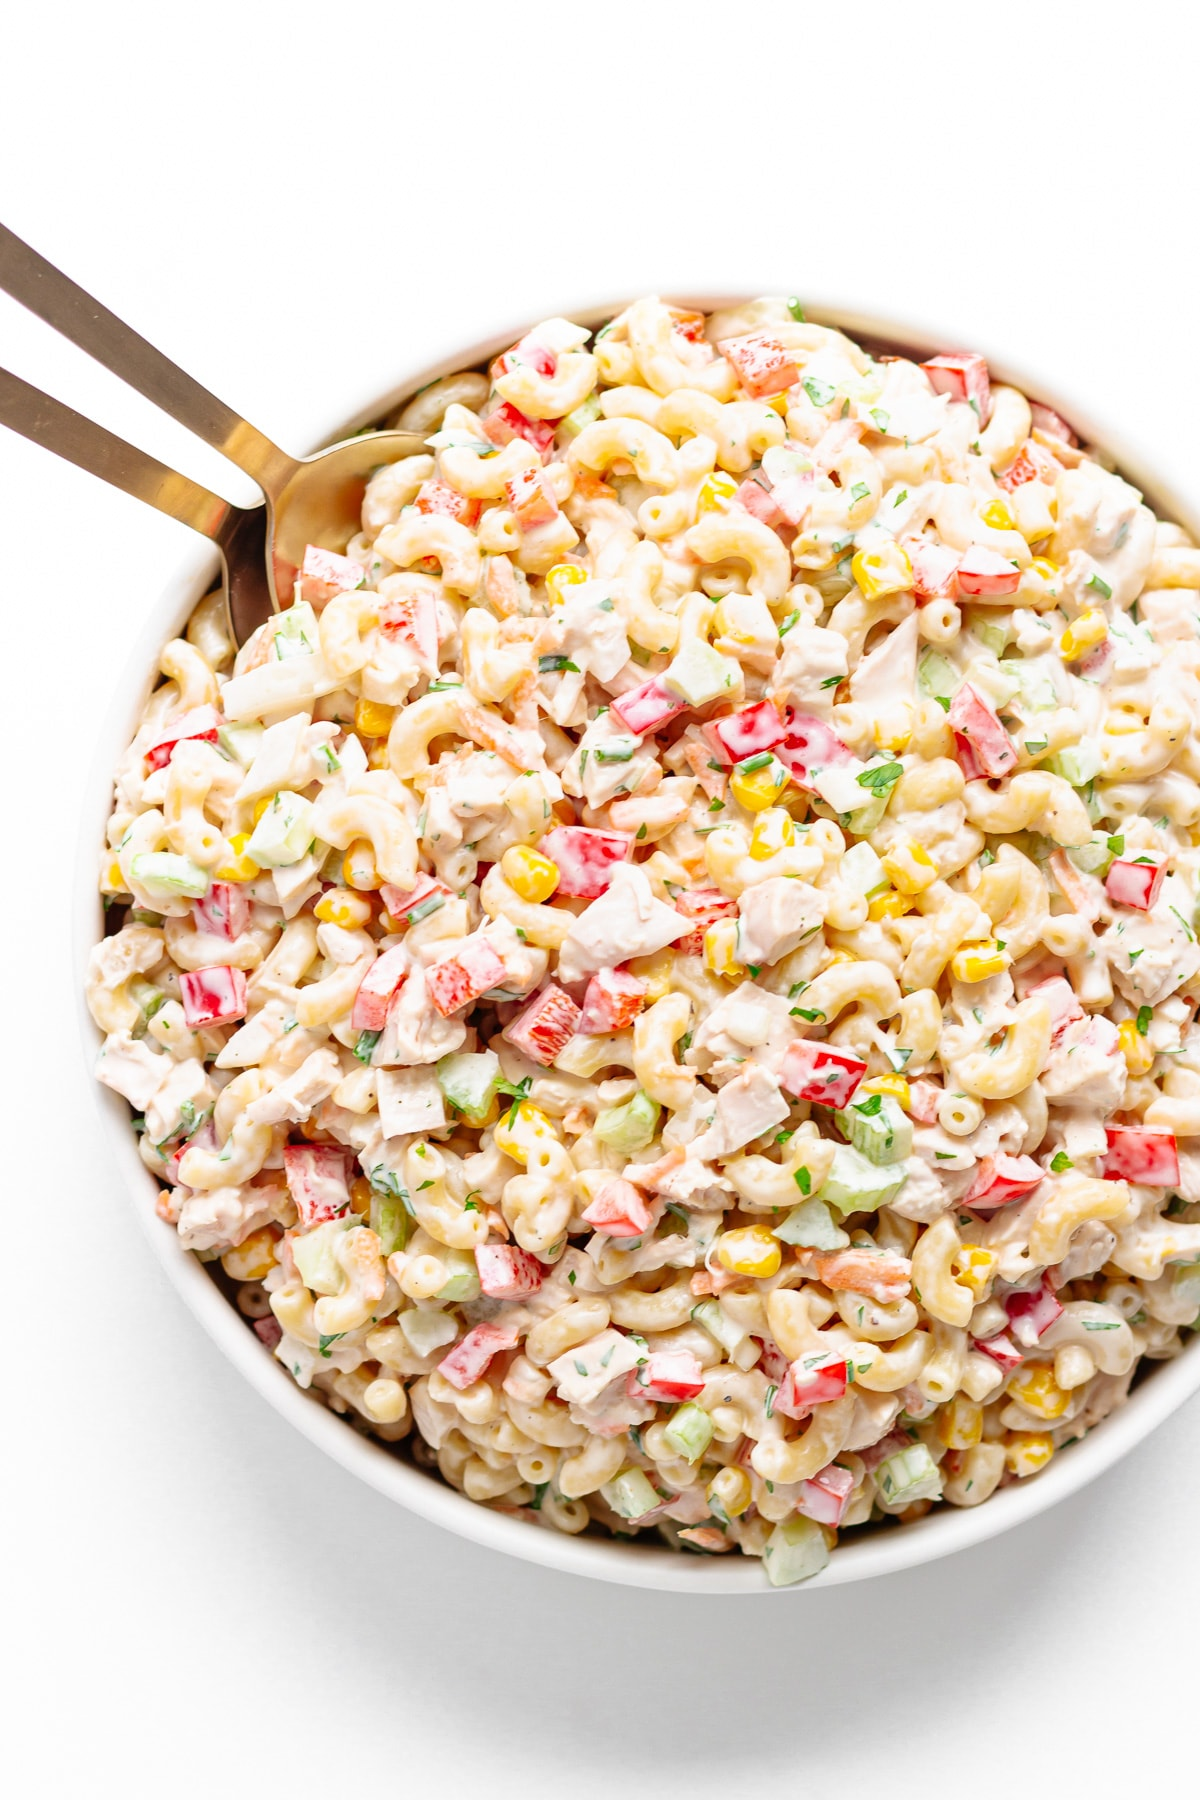 Large white serving bowl of creamy chicken pasta salad with gold servers tucked into corner.